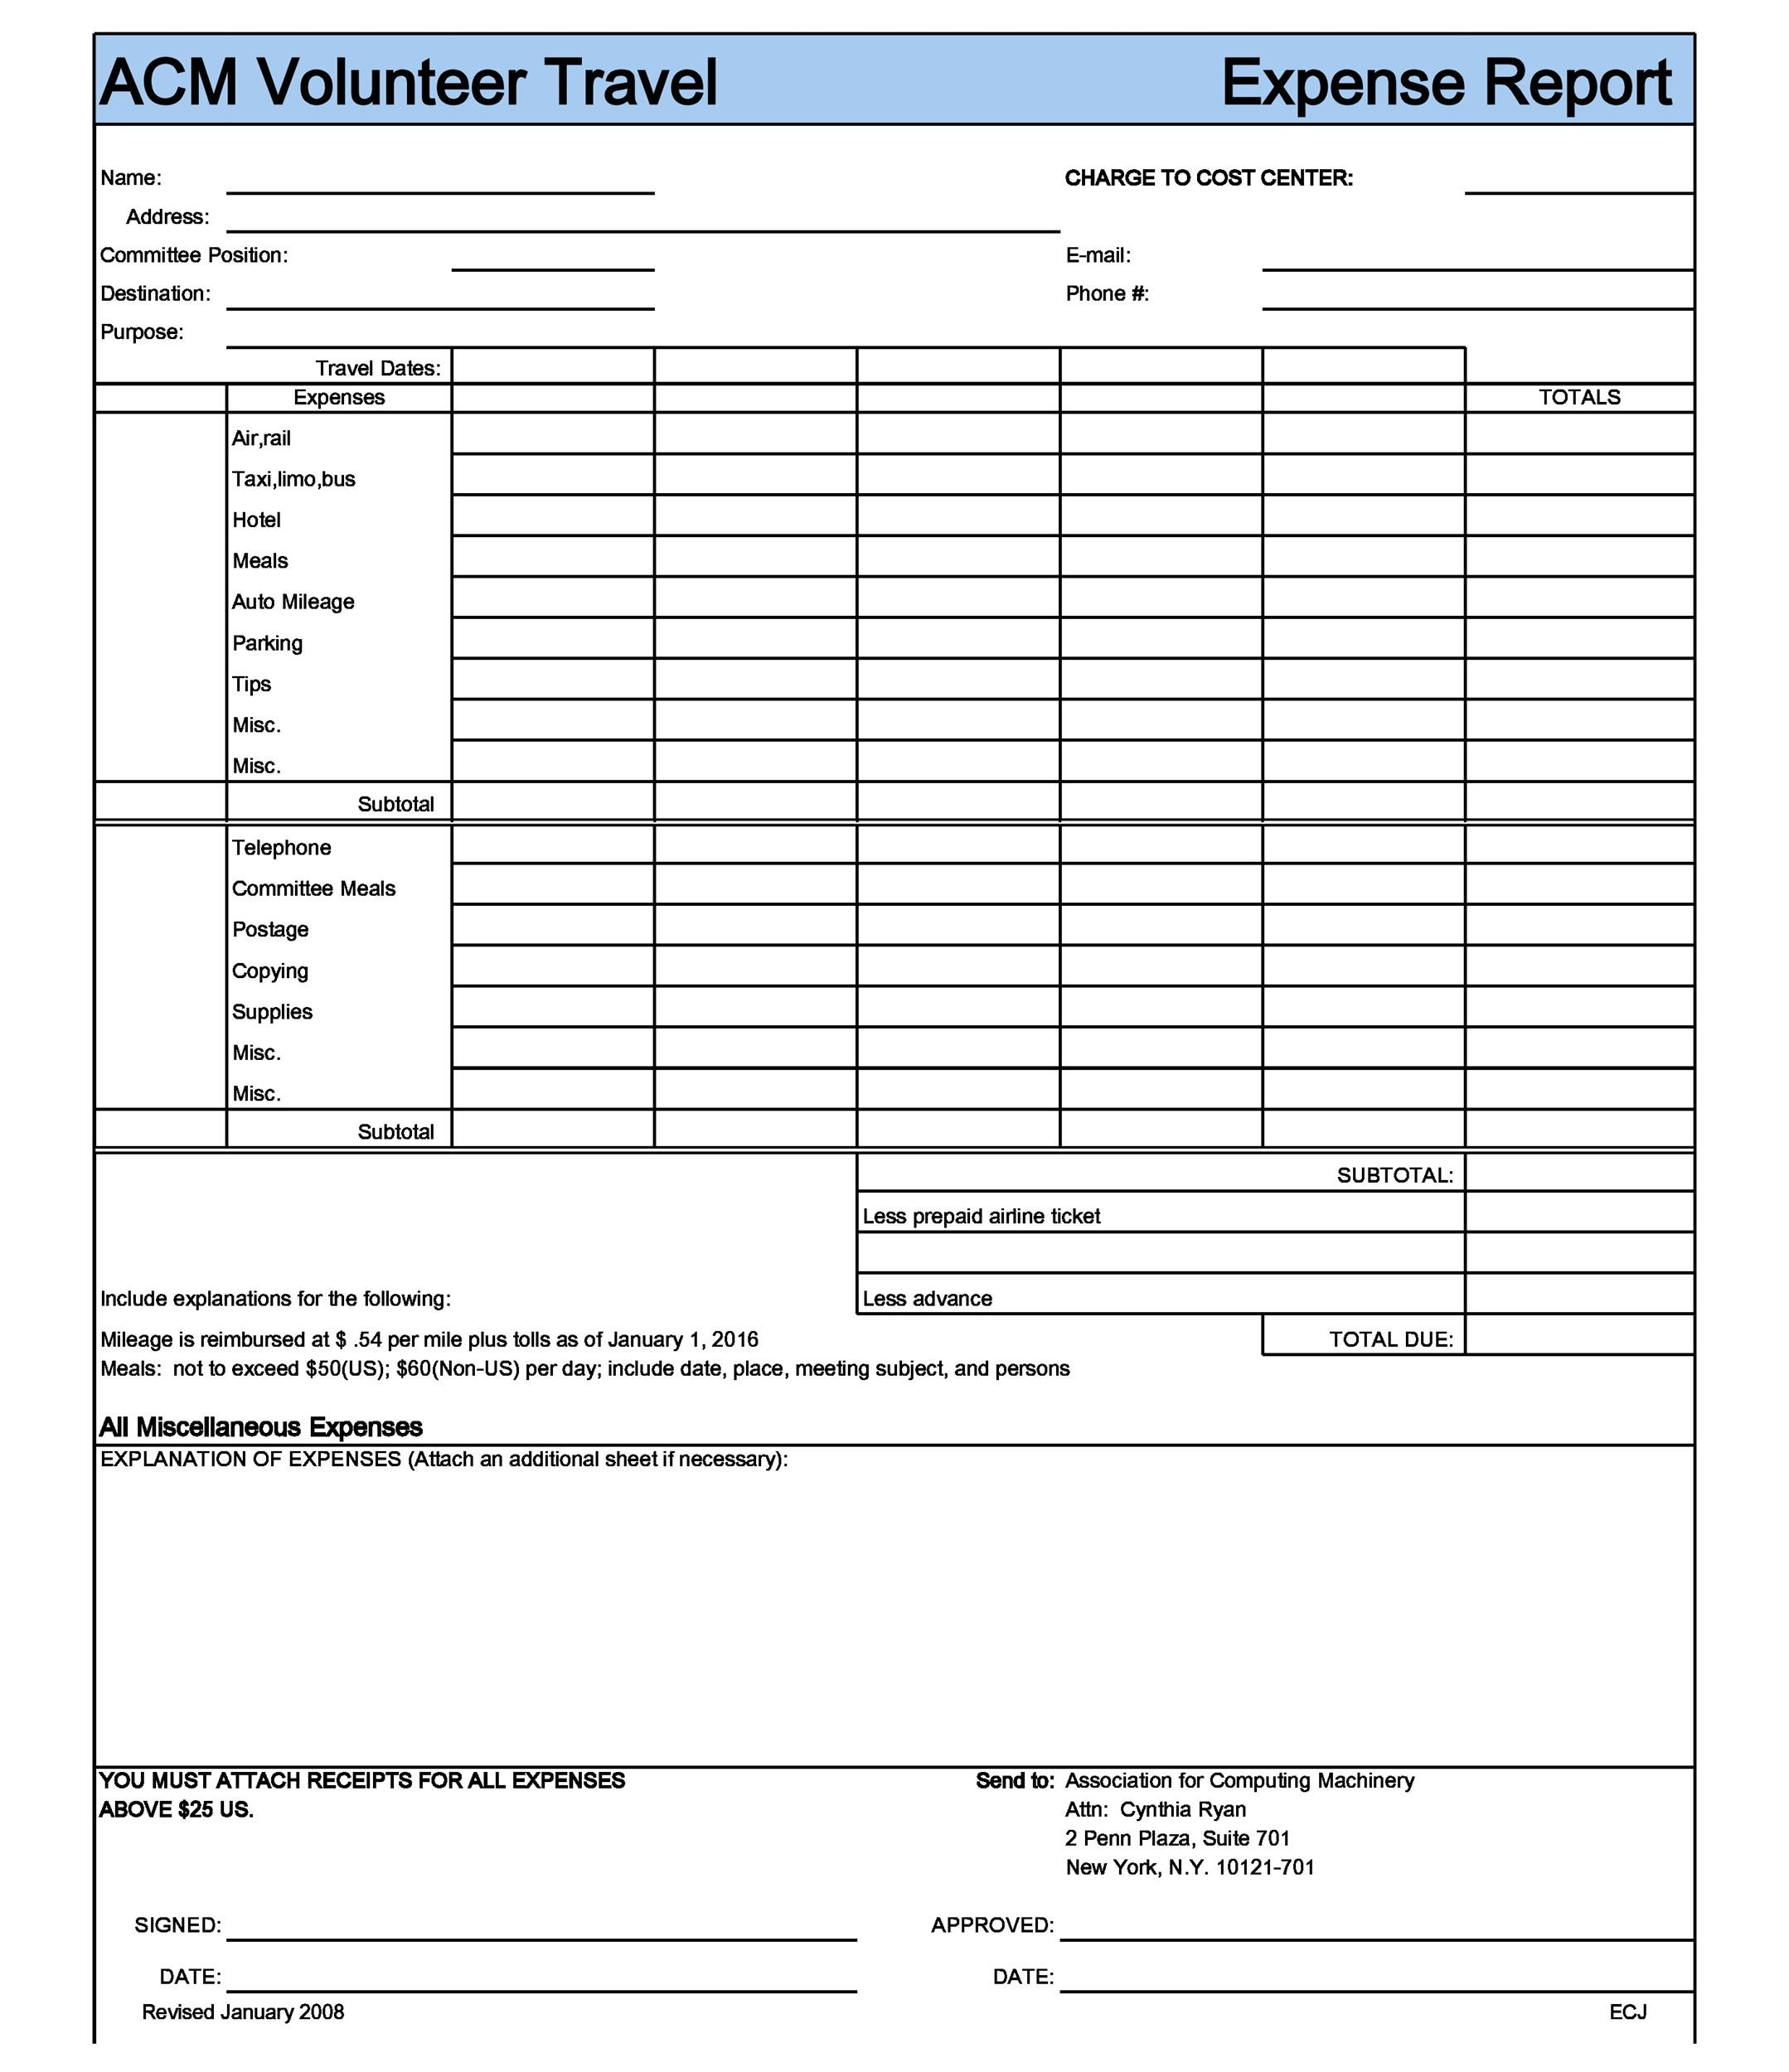 Sample Expense Report | Sample Expense Report Form Denmar Impulsar Co